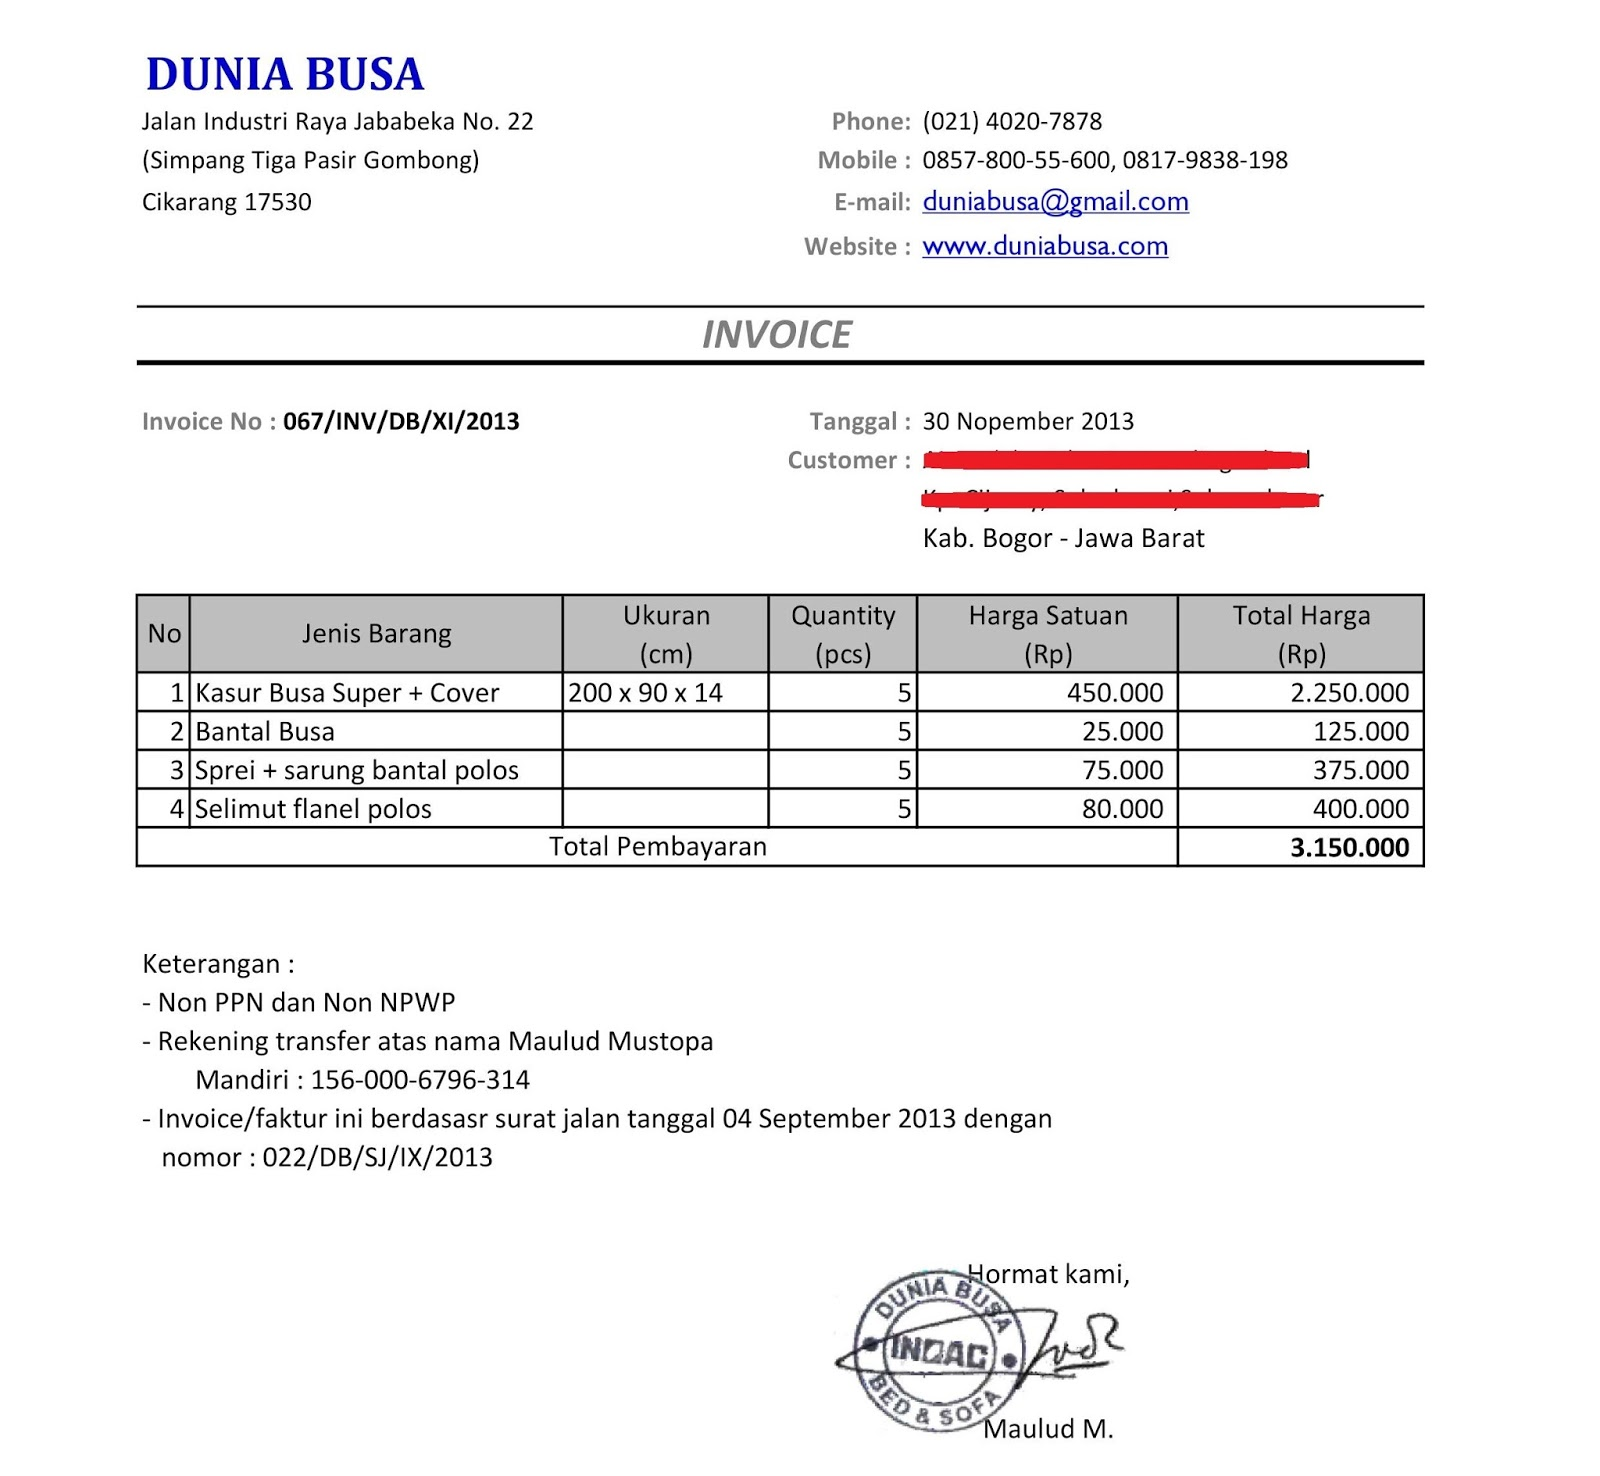 Shopdesignsus  Scenic Free Invoice Online  Create Invoice Online  Invoice Template  With Glamorous Contoh Format Invoice Atau Surat Tagihan  Brankas Arsip  Free Invoice Online With Nice What Is Invoice Price Vs Msrp Also Lease Invoice In Addition How To Find Factory Invoice Price And Tracking Invoices As Well As How To Make A Invoice In Word Additionally Vat Invoices From Sklepco With Shopdesignsus  Glamorous Free Invoice Online  Create Invoice Online  Invoice Template  With Nice Contoh Format Invoice Atau Surat Tagihan  Brankas Arsip  Free Invoice Online And Scenic What Is Invoice Price Vs Msrp Also Lease Invoice In Addition How To Find Factory Invoice Price From Sklepco